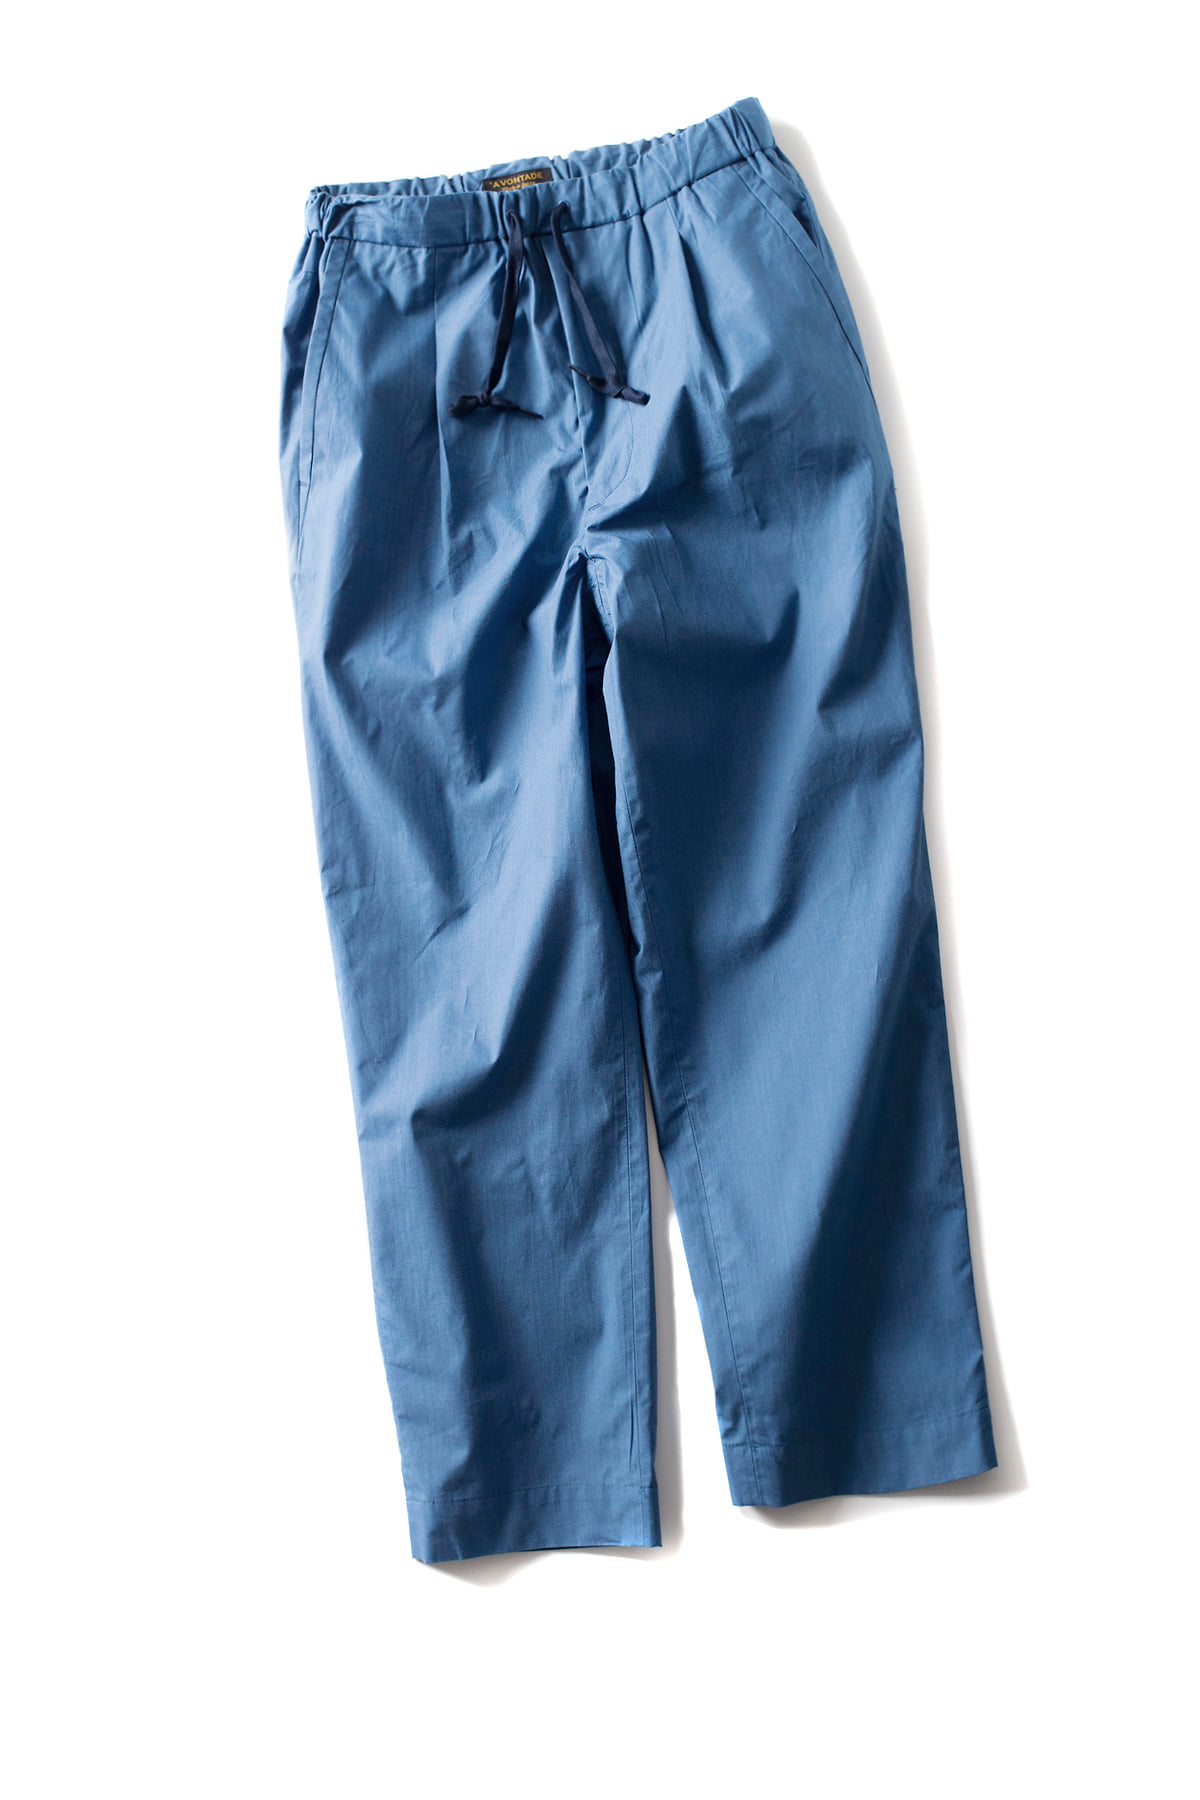 A vontade : 1 Tuck Tapered Easy Trousers (Blue)